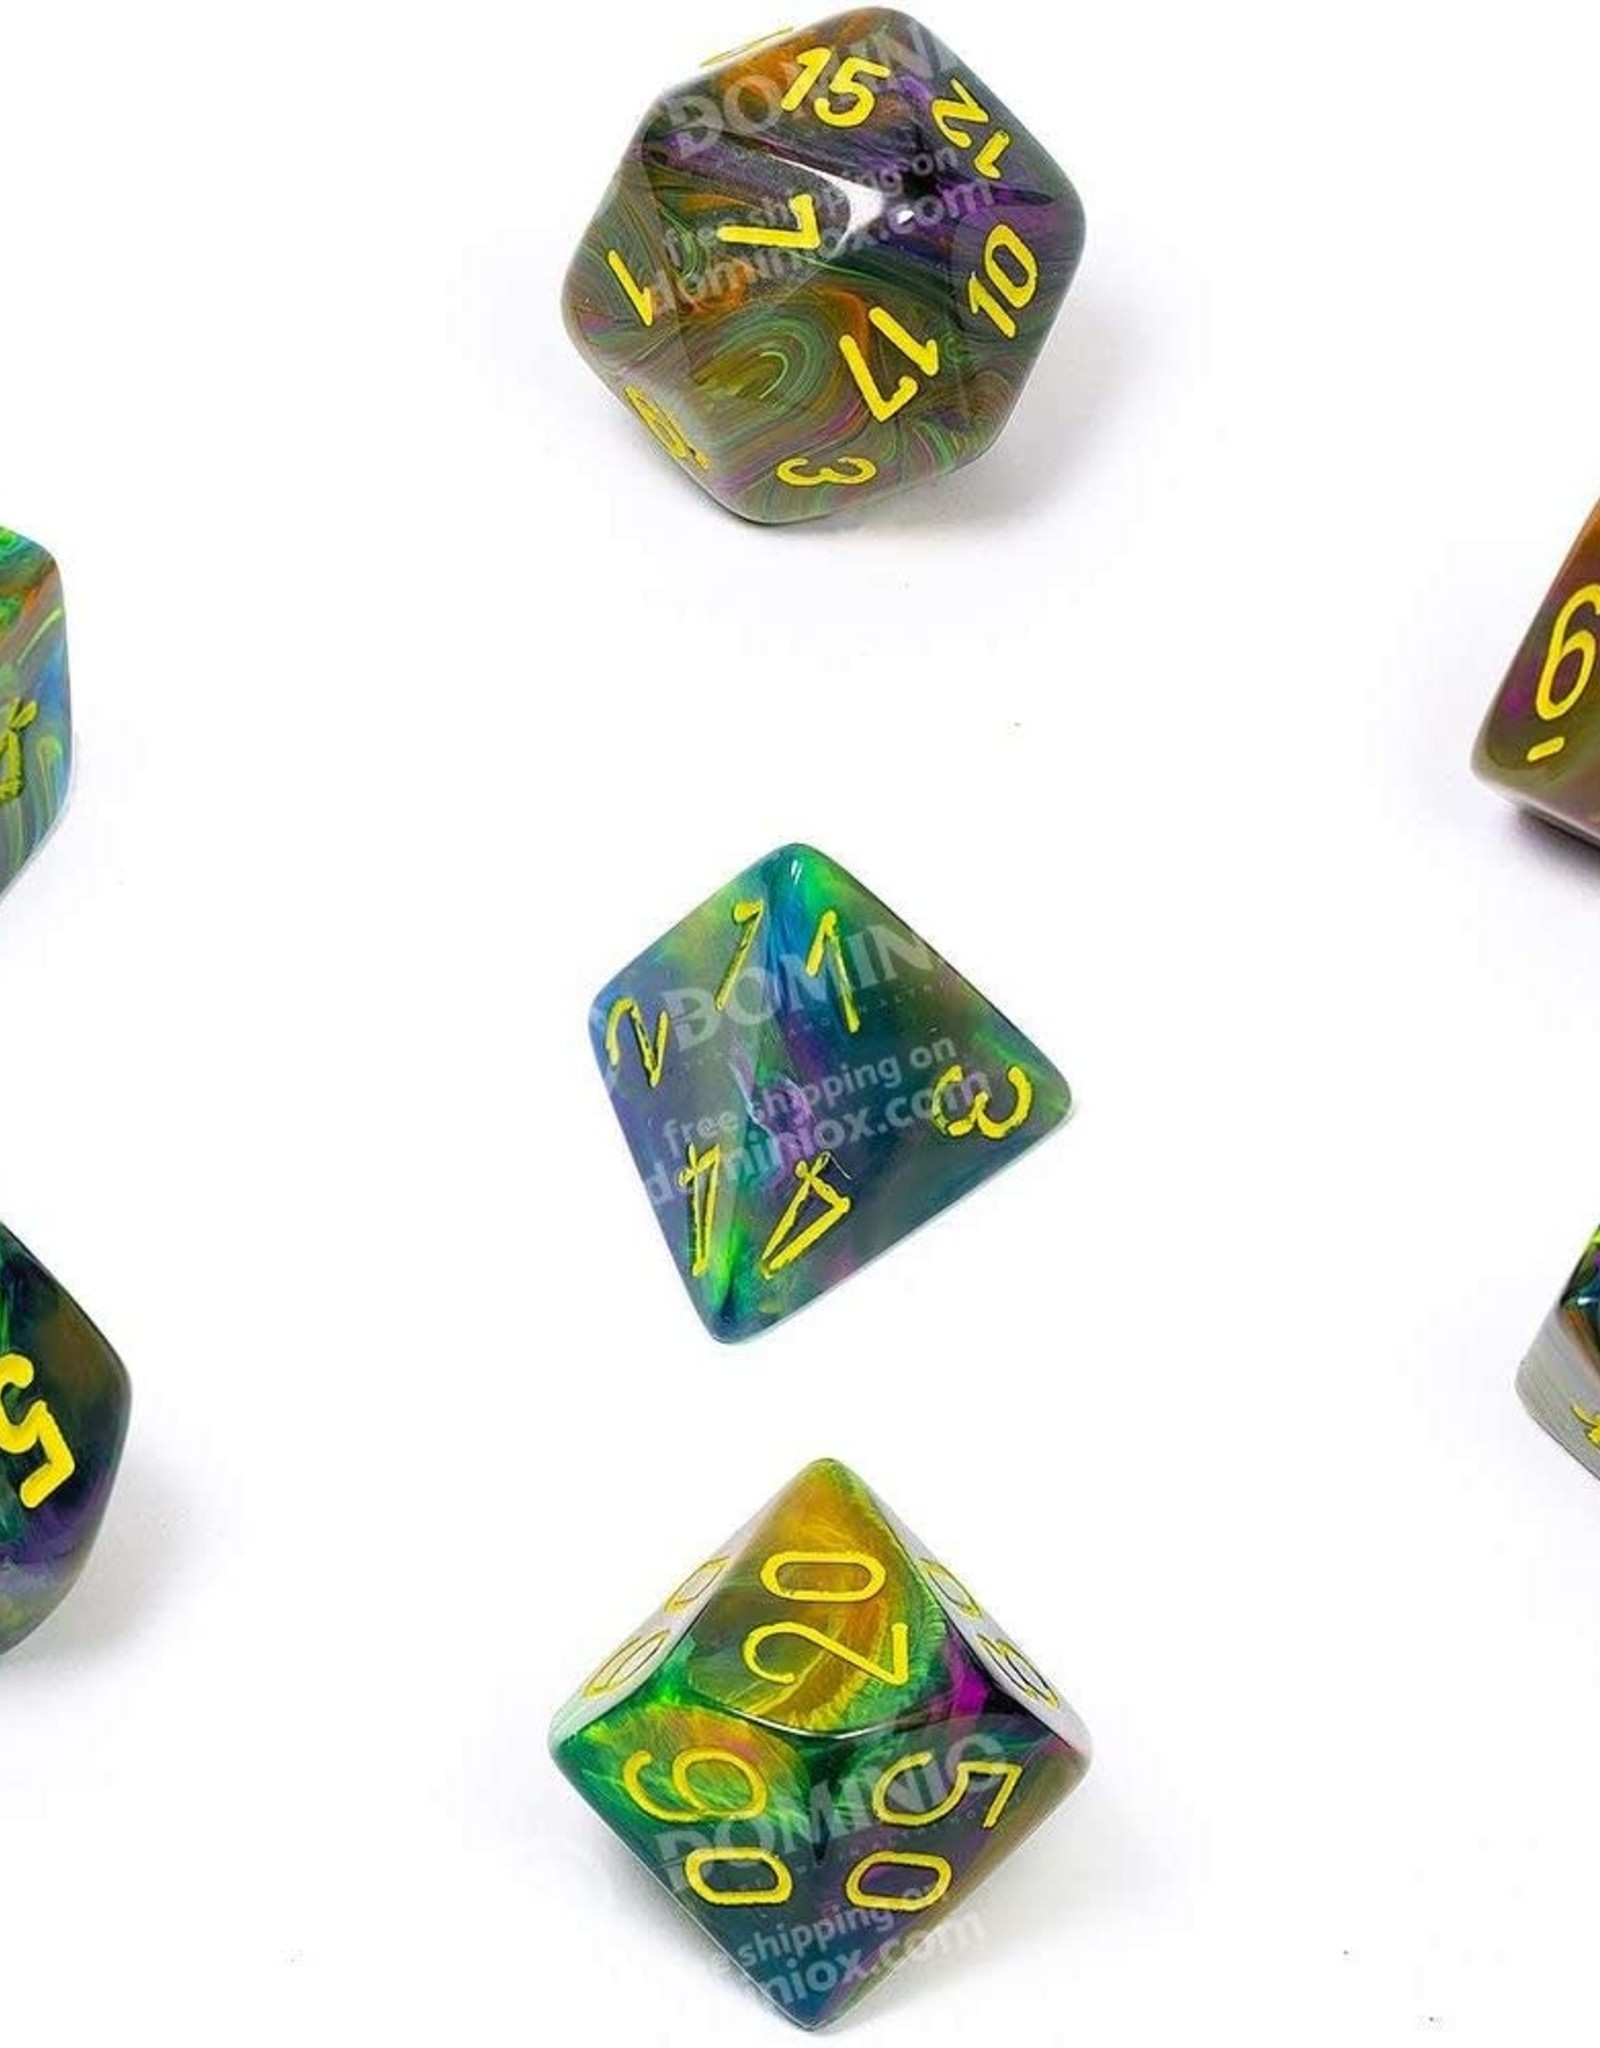 Chessex Chessex CHX27449 Dice-Festive Set, Rio/Yellow